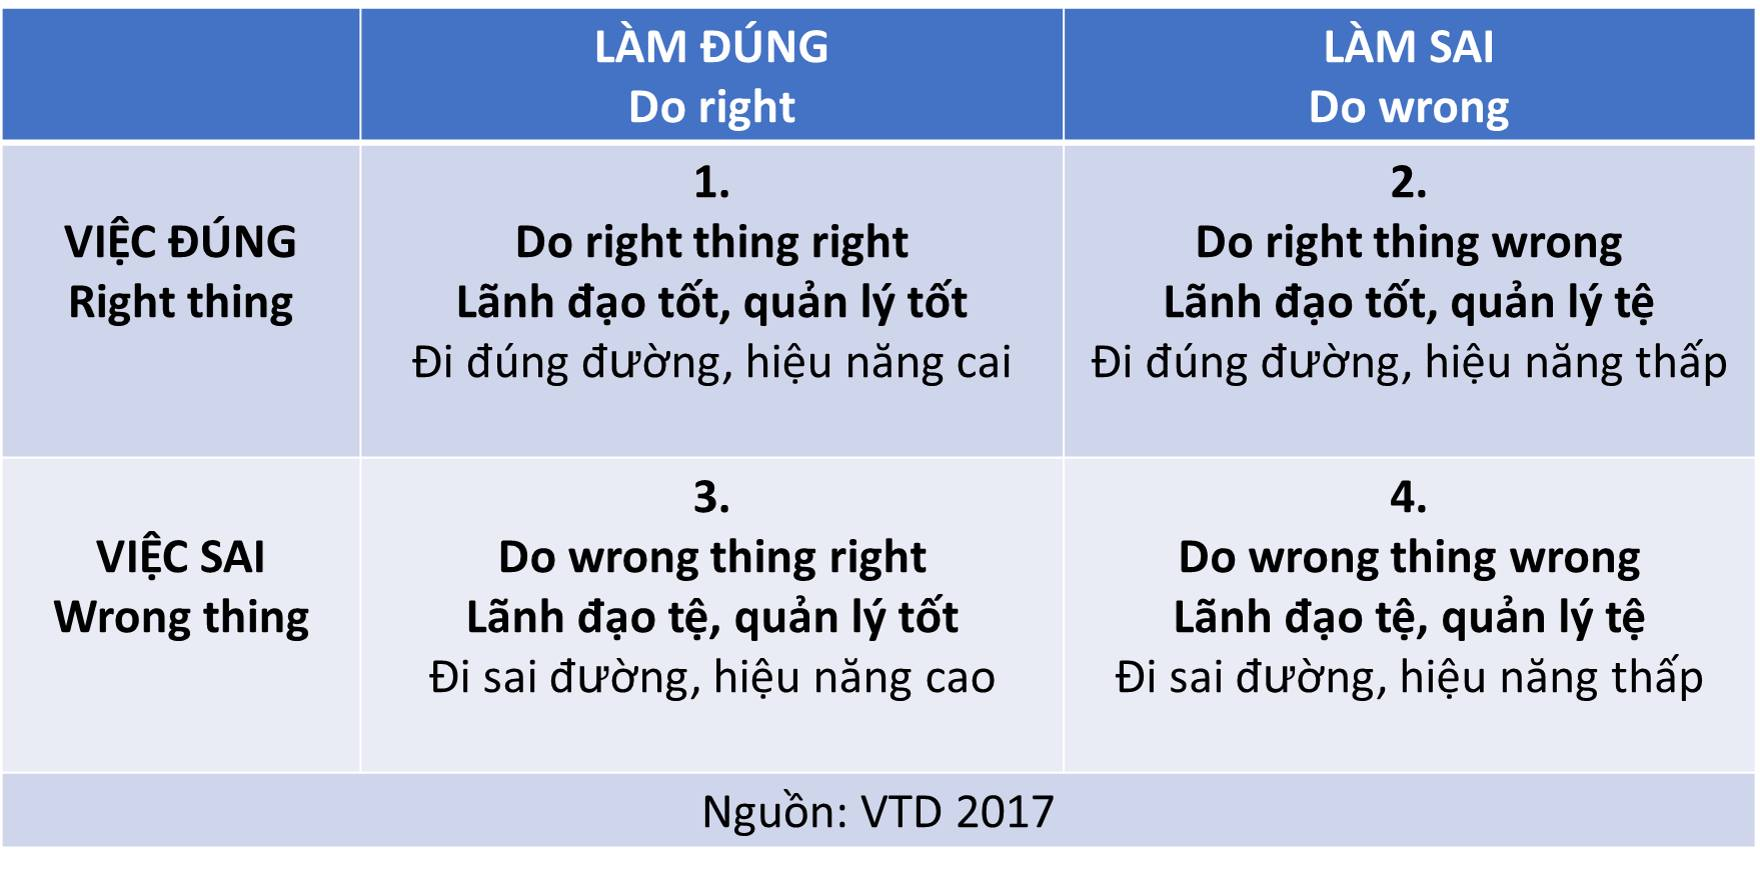 Do right thing right vs Do wrong thing wrong